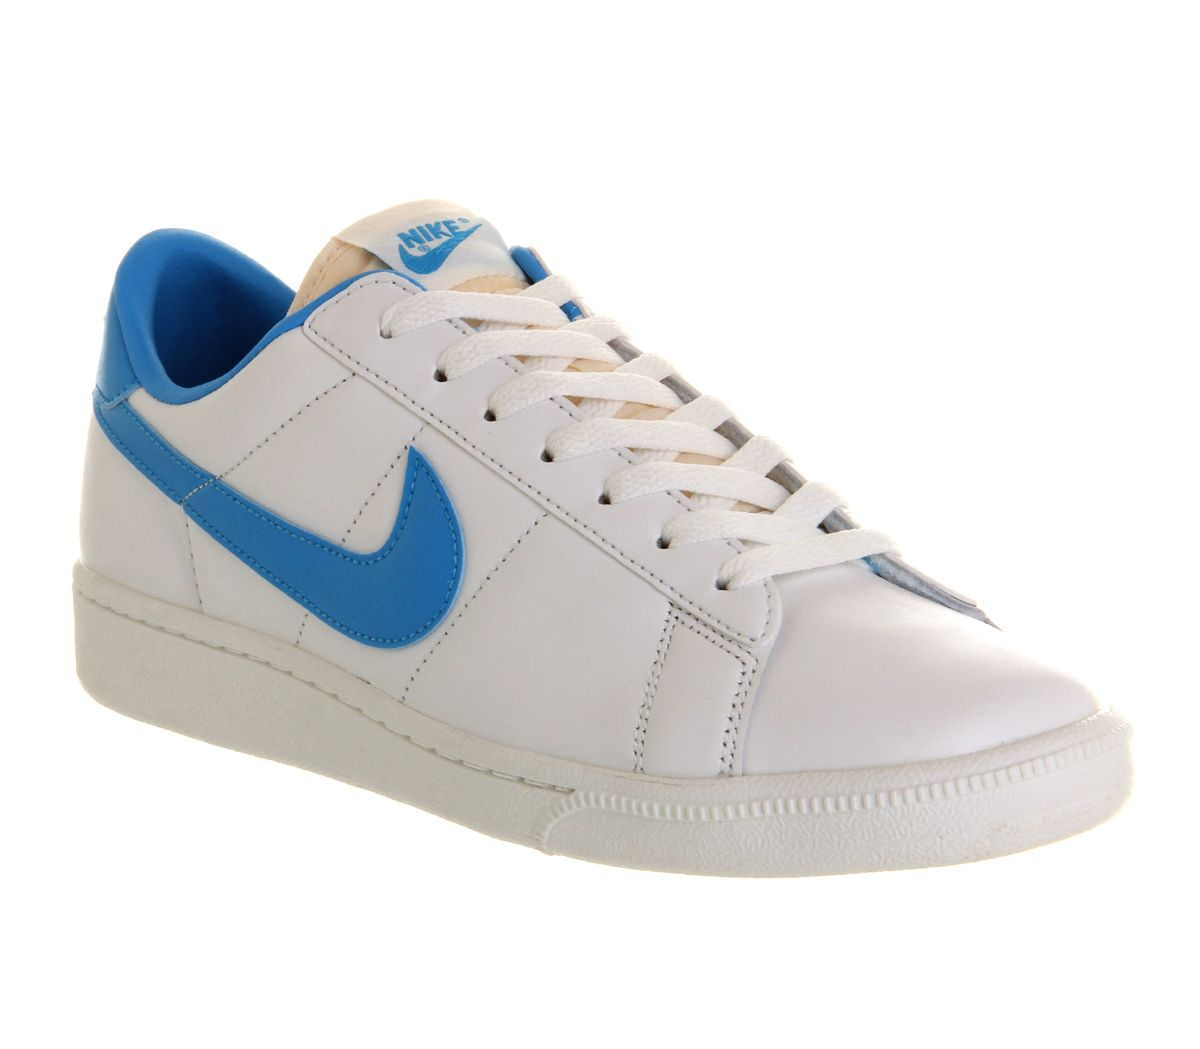 Nike Nike Tennis Classic Summit White Vivid Blue - Unisex Sports